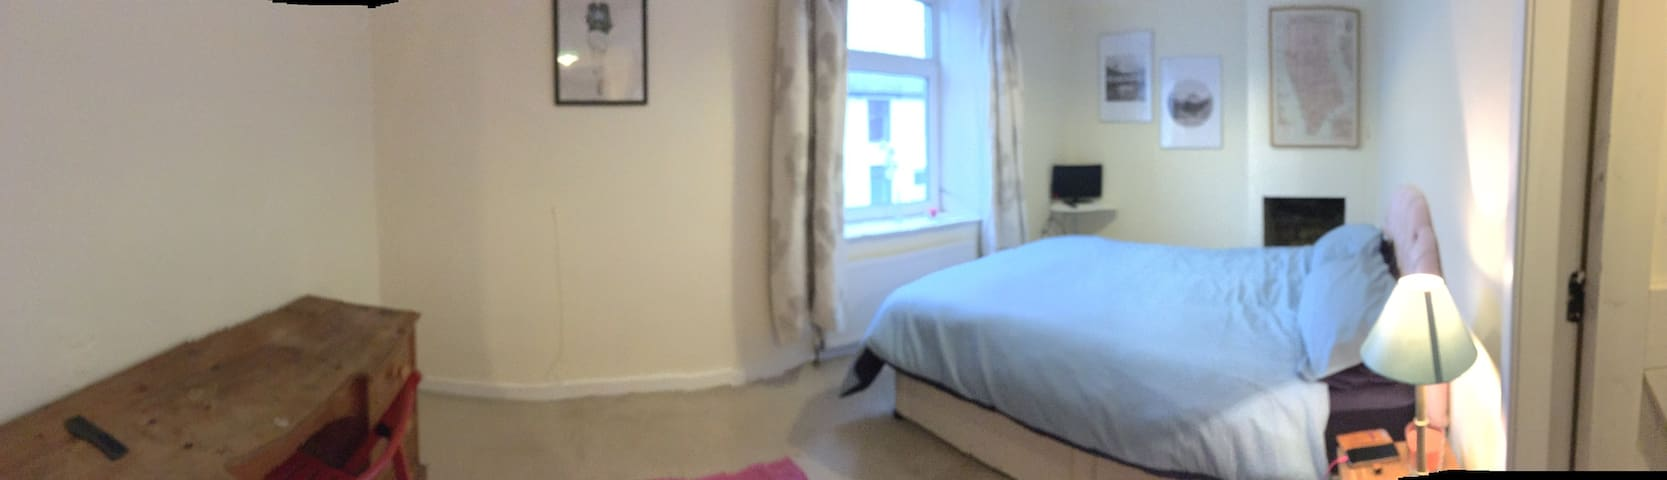 The front double bedroom.